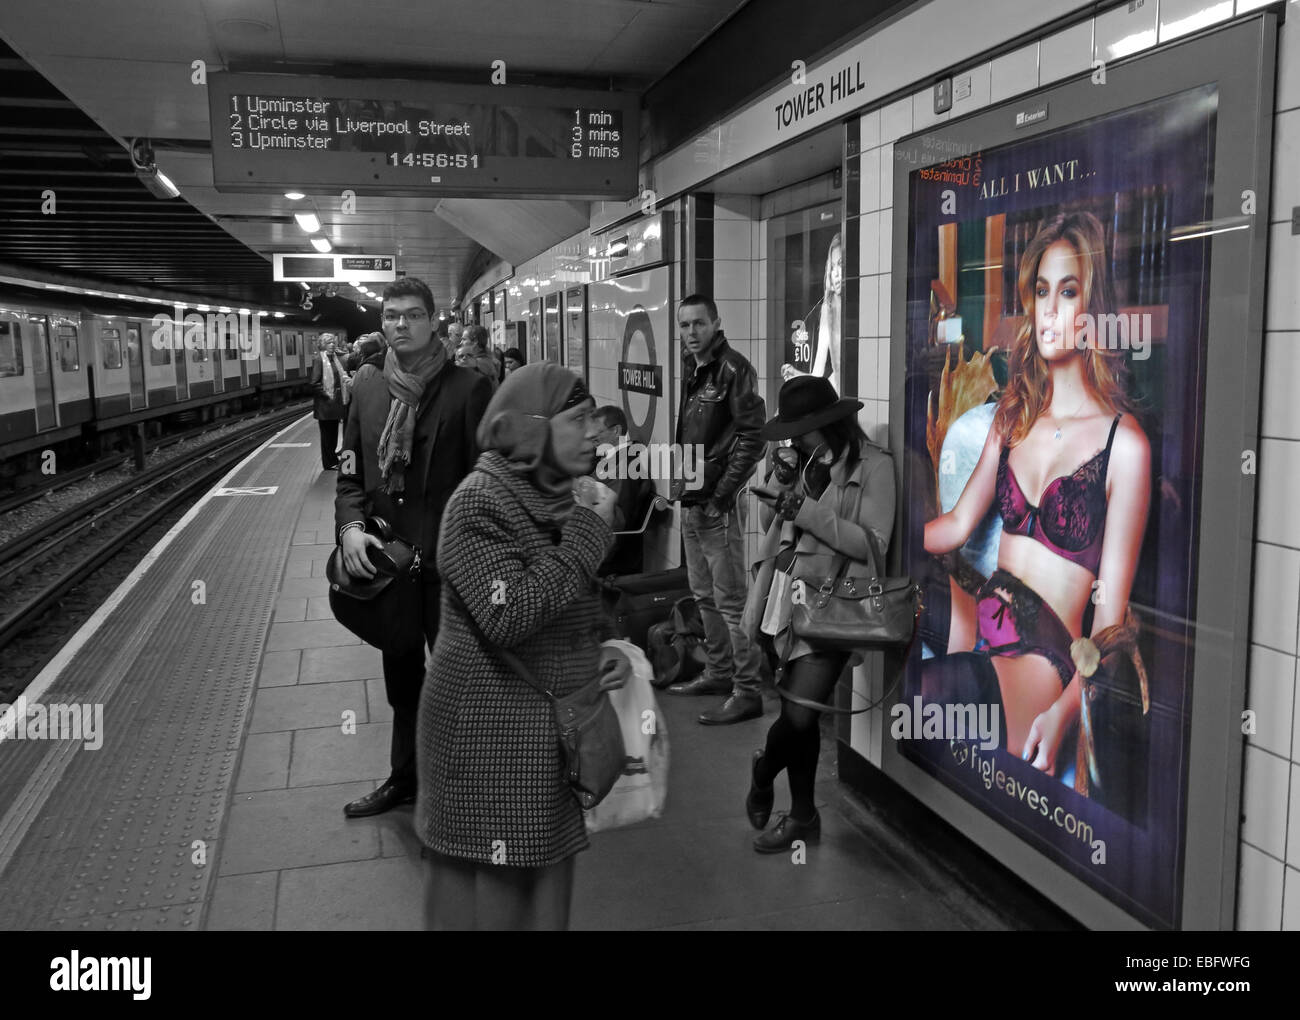 City Underground platform,England,UK,GB,Great,Britain,transport,people,looking,at,a,poster,fun,shot,LU,circle,district,line,flesh,underwear,bra,stockings,suspenders,in,selective,color,colour,muslim,woman,lady,culture,clash,Islam,dumbfounded,gotonysmith,Buy Pictures of,Buy Images Of